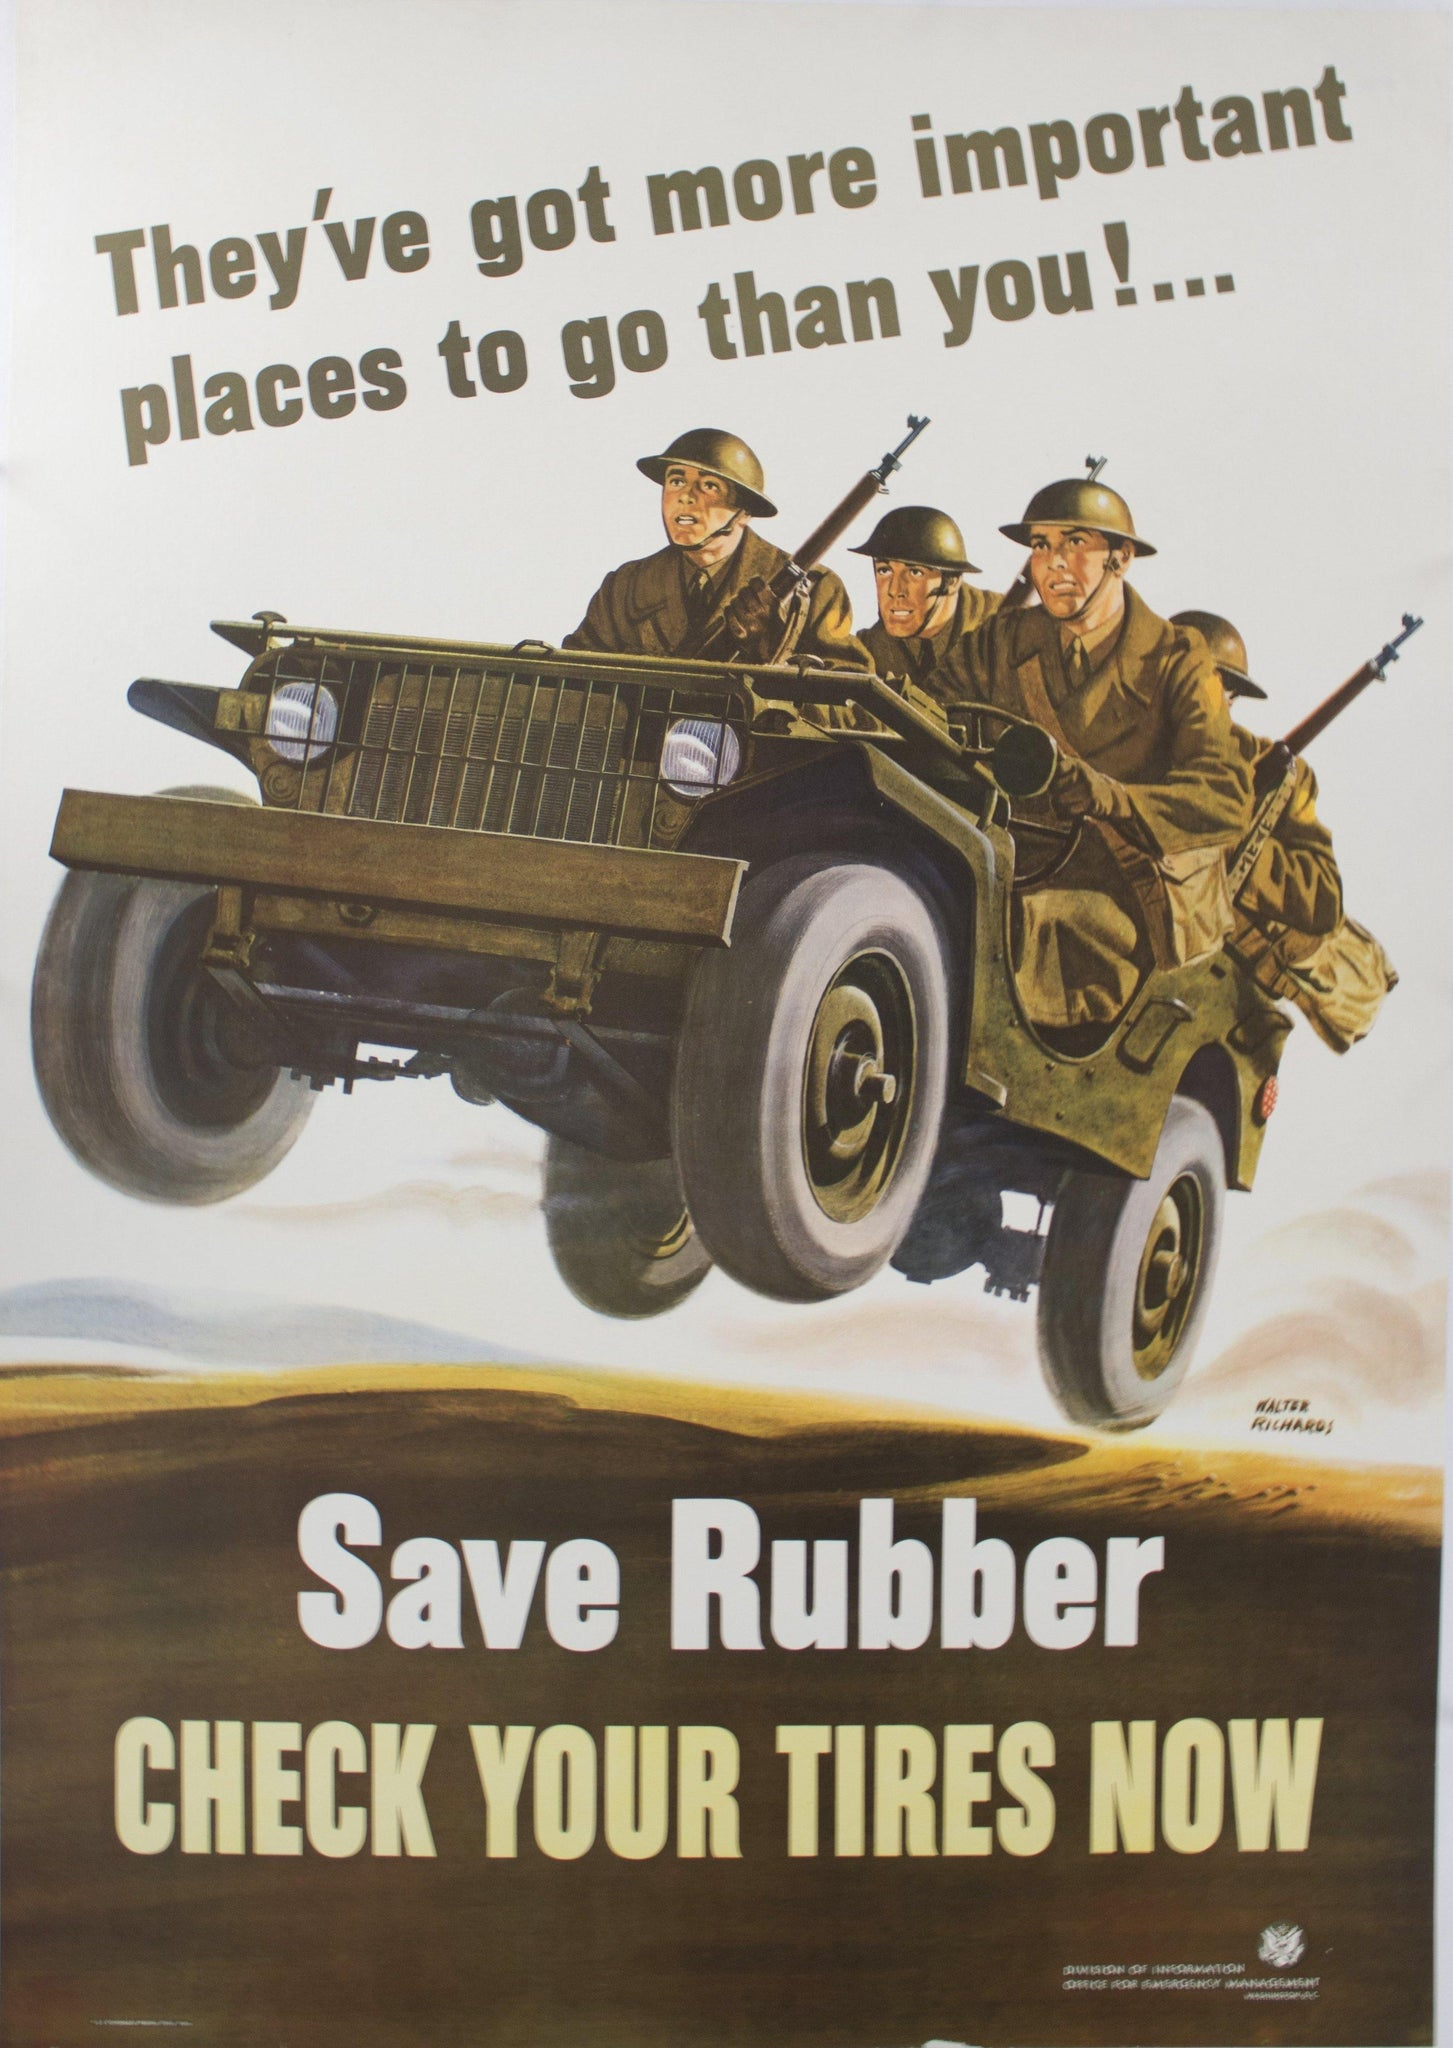 1942 They've Got More Important Places to Go Than You! Save Rubber Check Your Tires Now